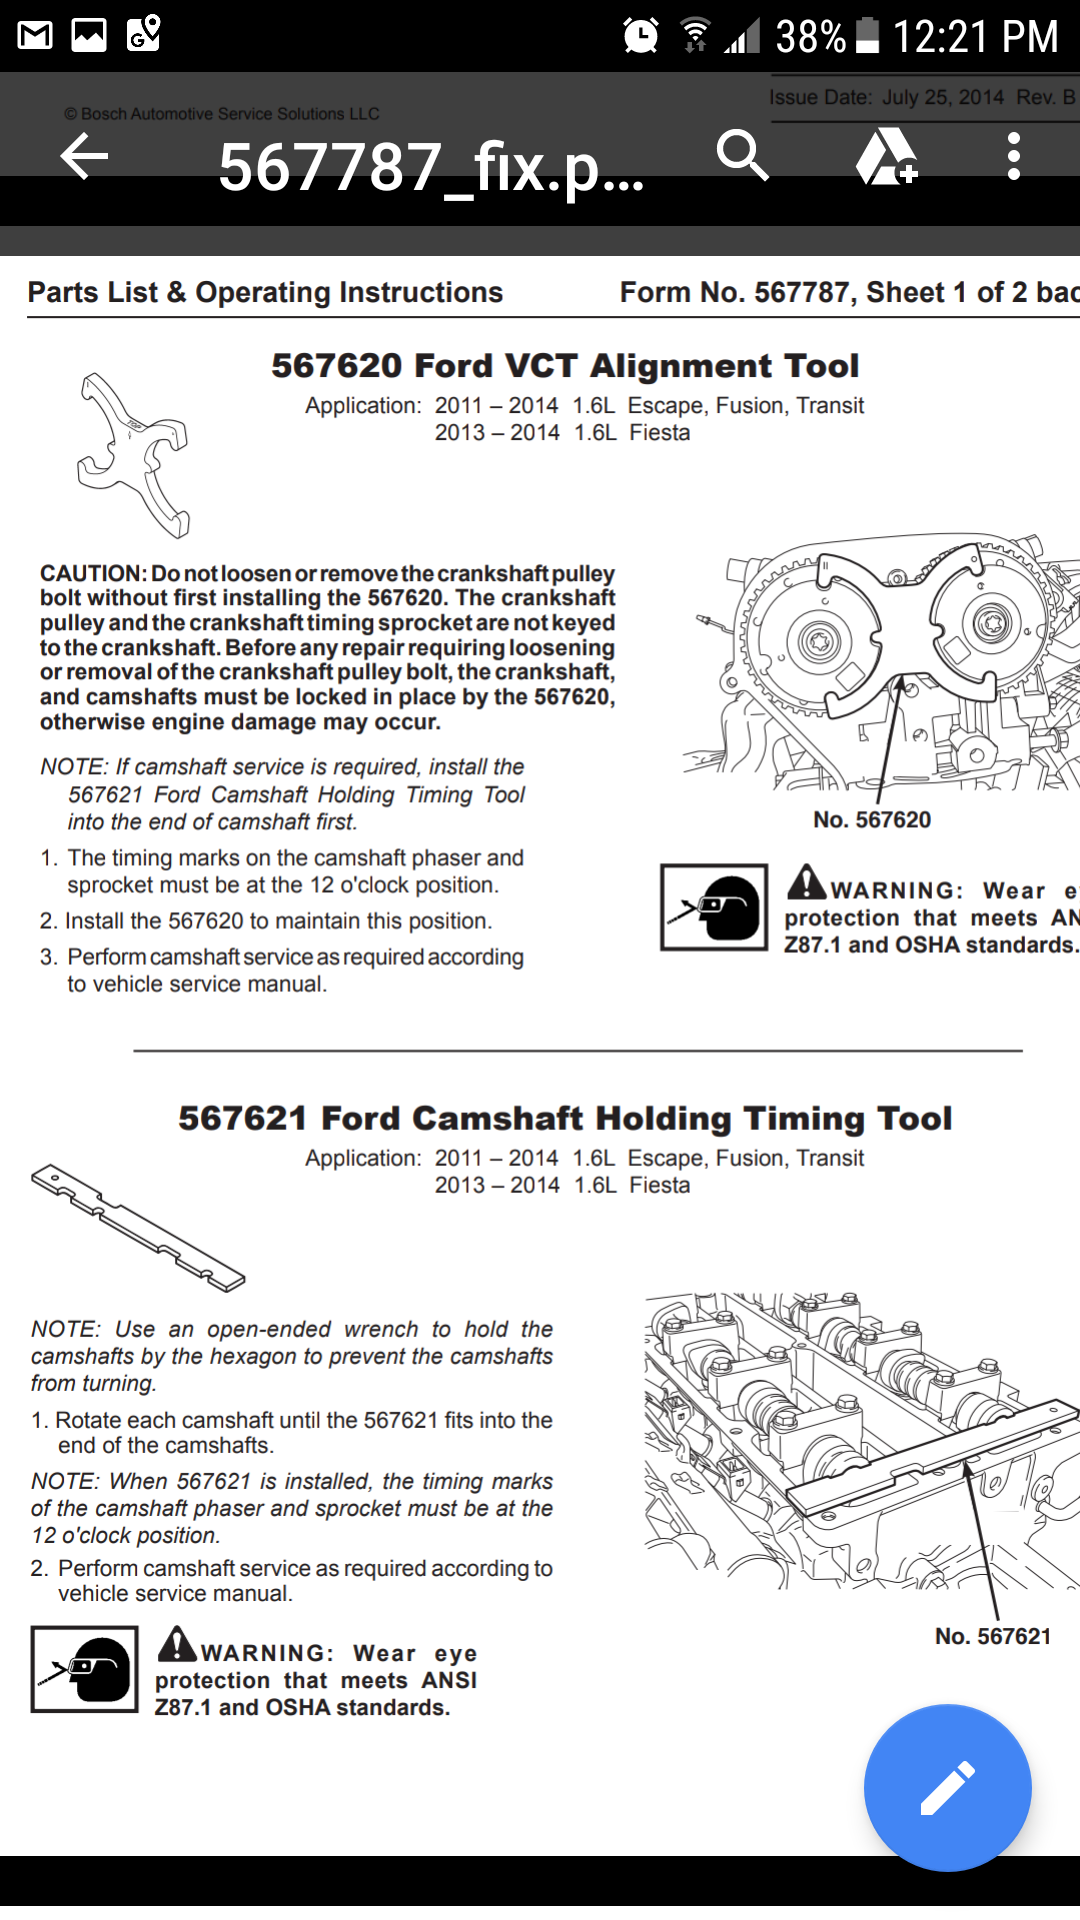 How to set the crankshaft and camshaft marks when replacing